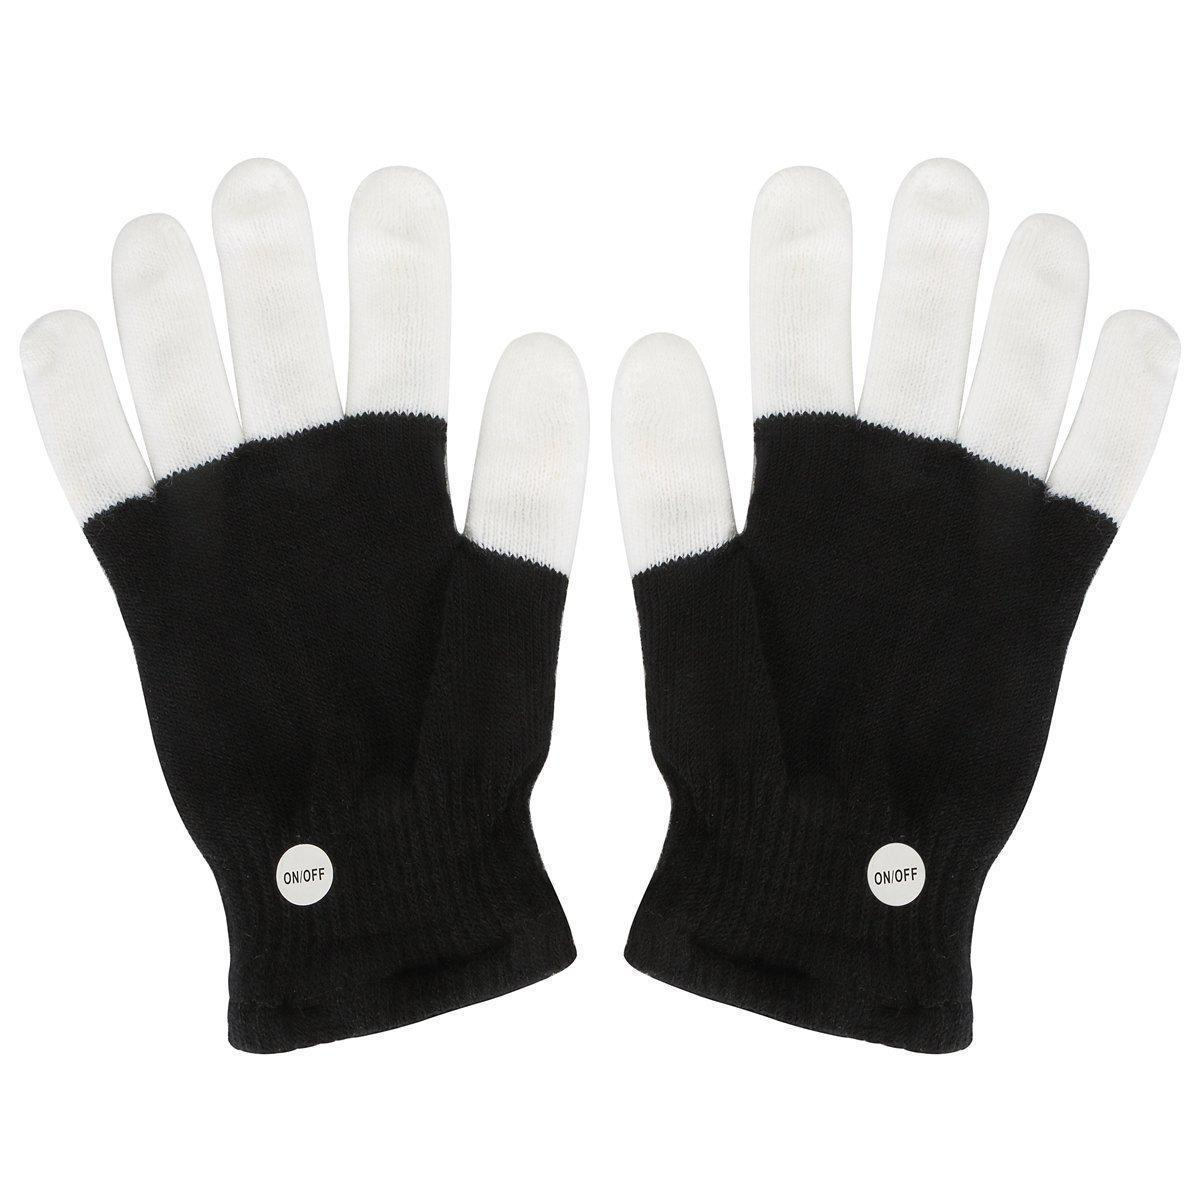 Multi-Color Electronic LED Flashing Gloves - One Pair w/Random Color or Design